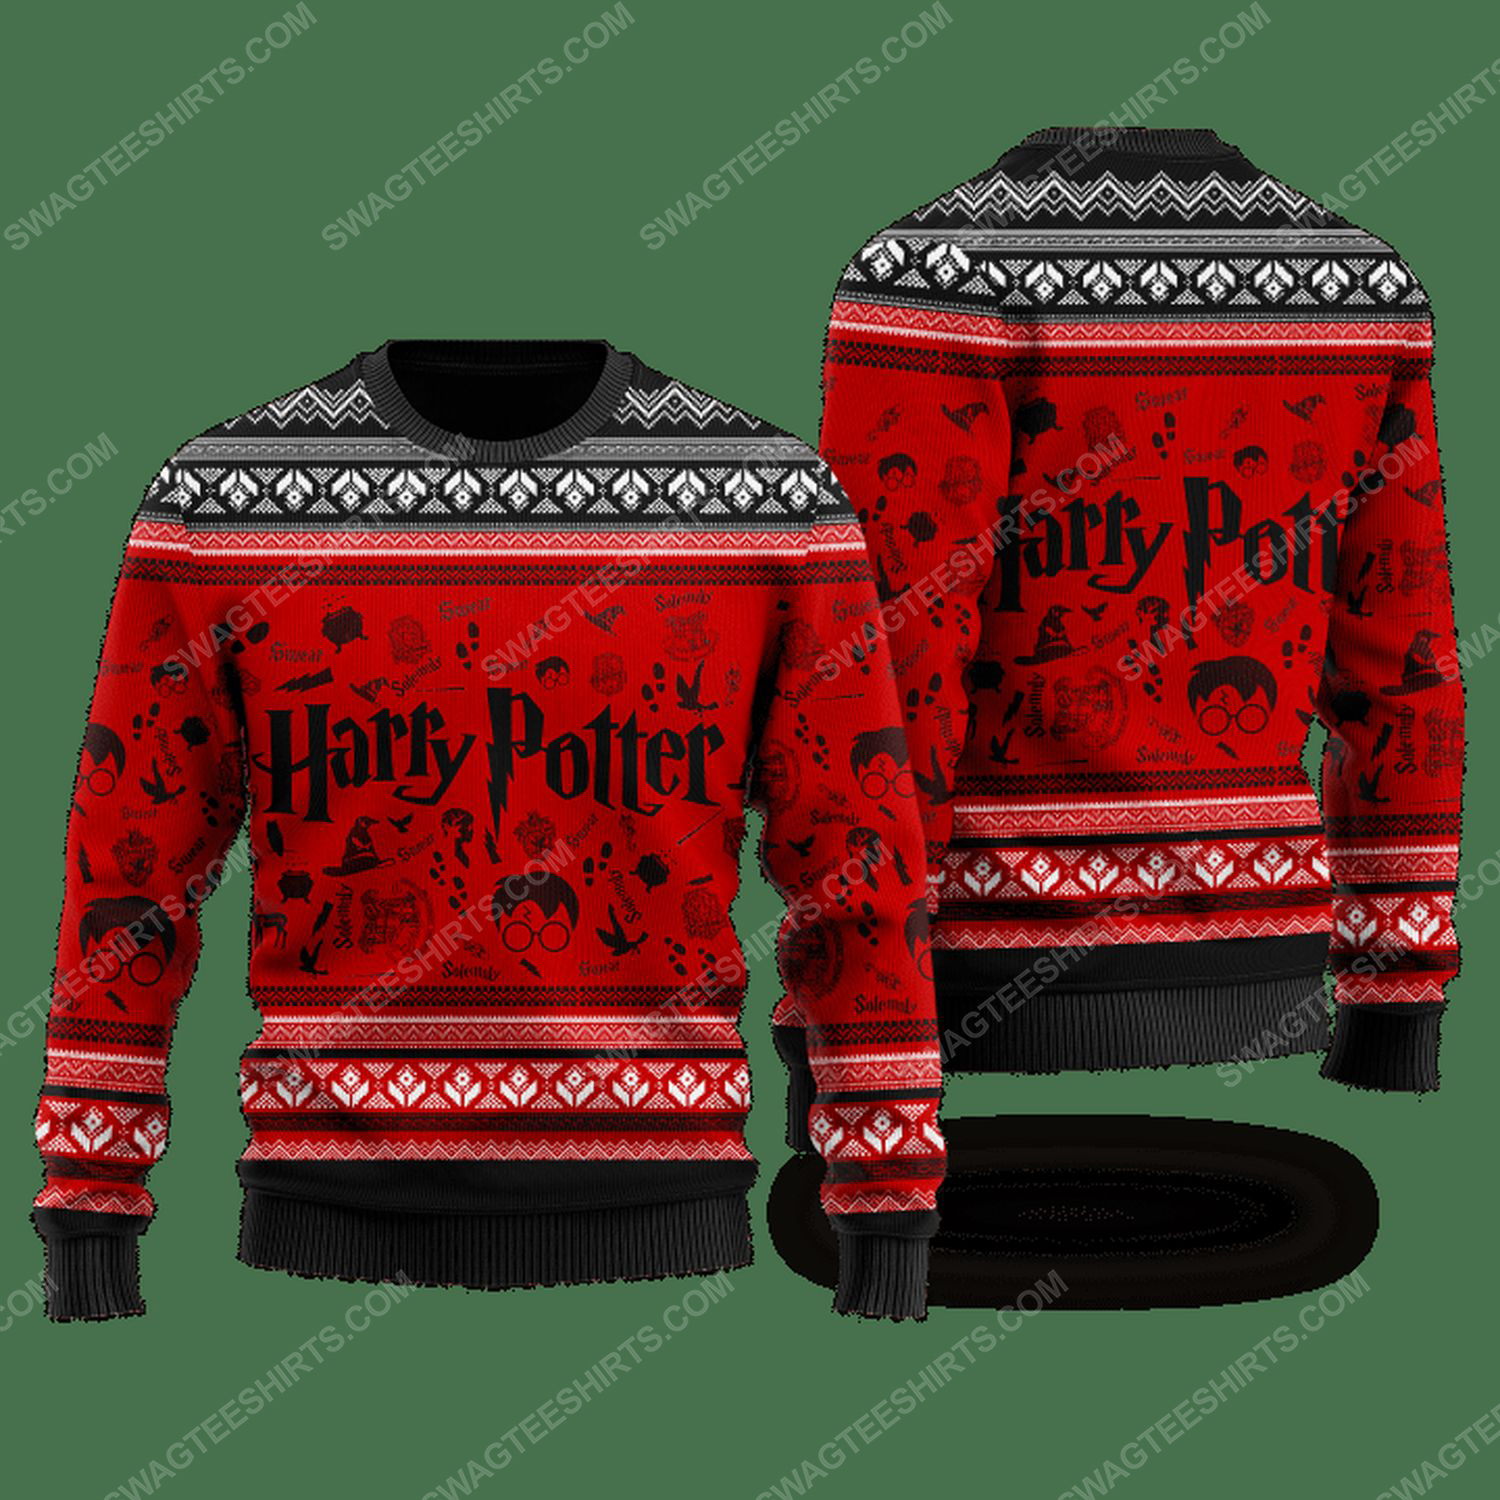 Harry potter movie ugly christmas sweater